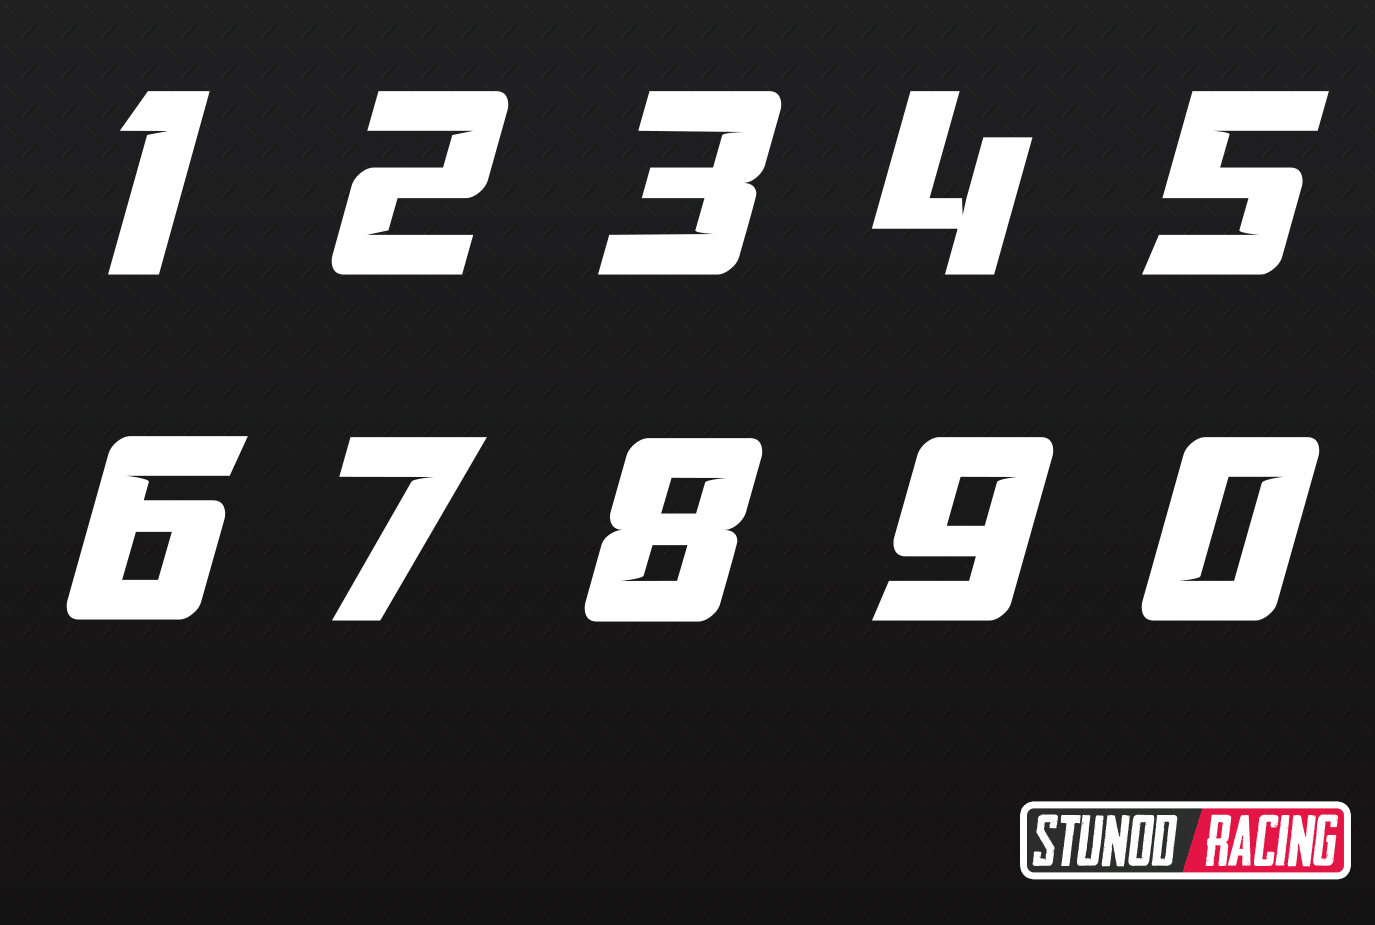 StunodRacing-MX_NumberSet.jpg